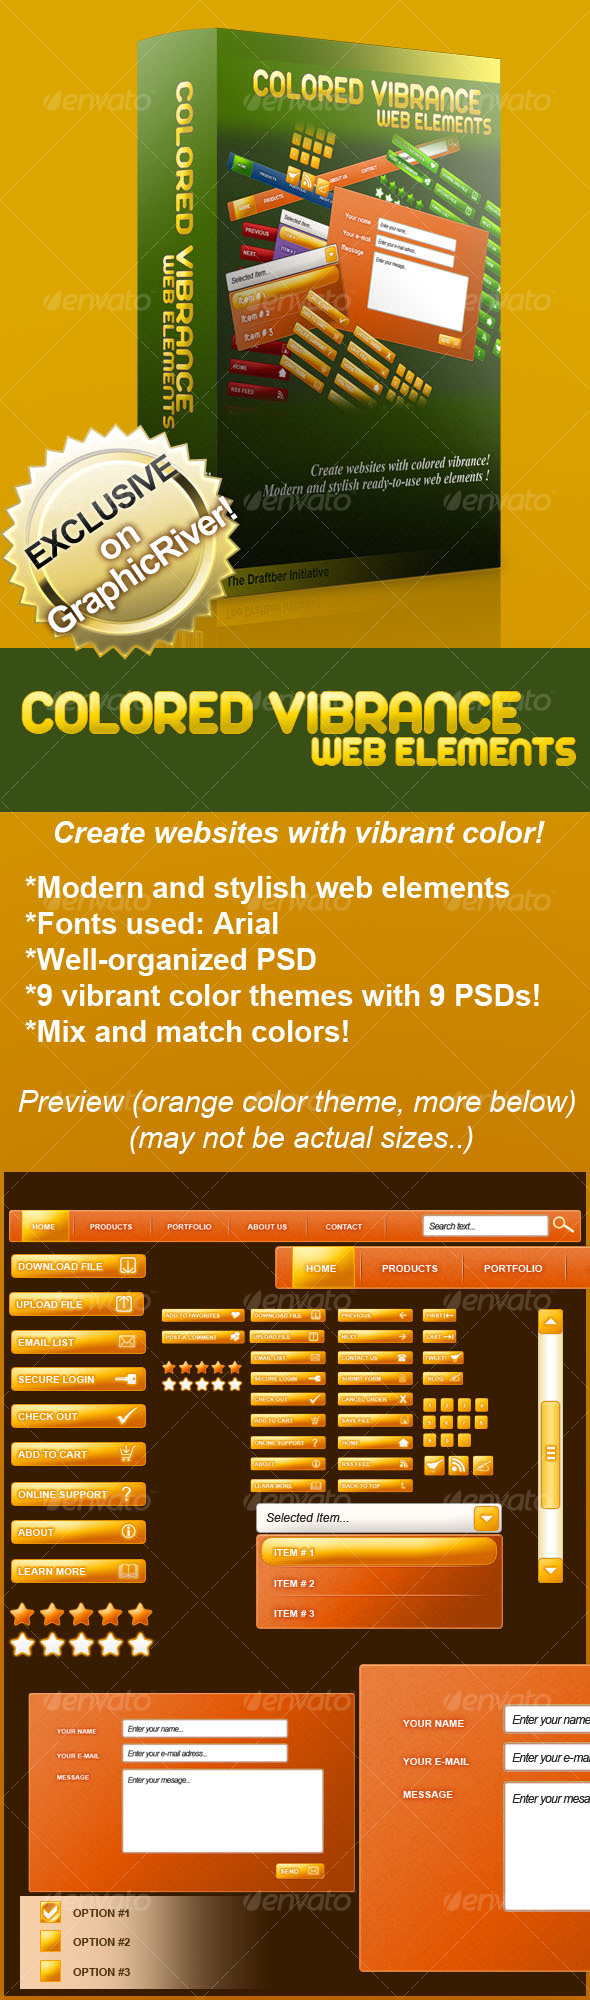 Colored Vibrance Web Elements - Web Elements